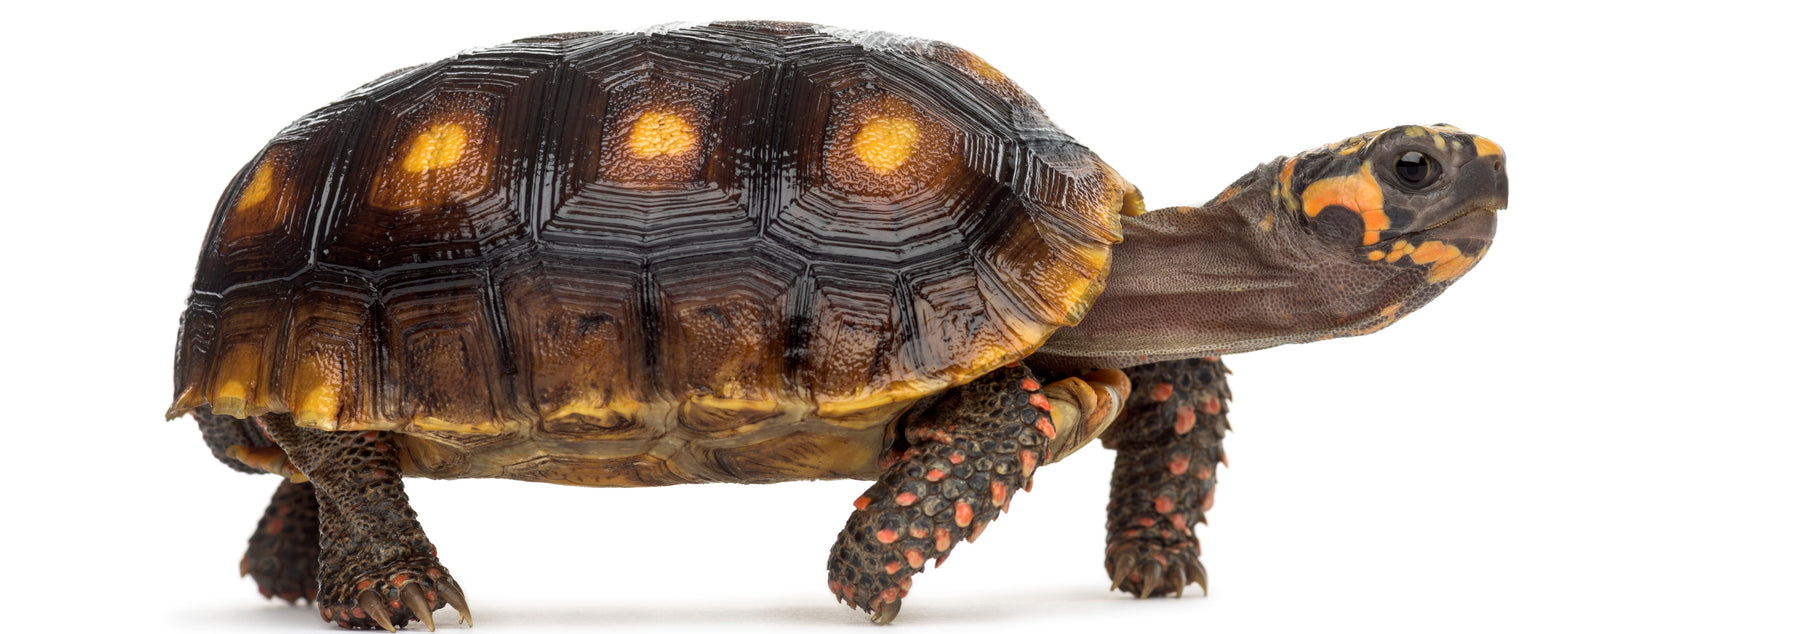 How to Care* for Your Red-Foot Tortoise